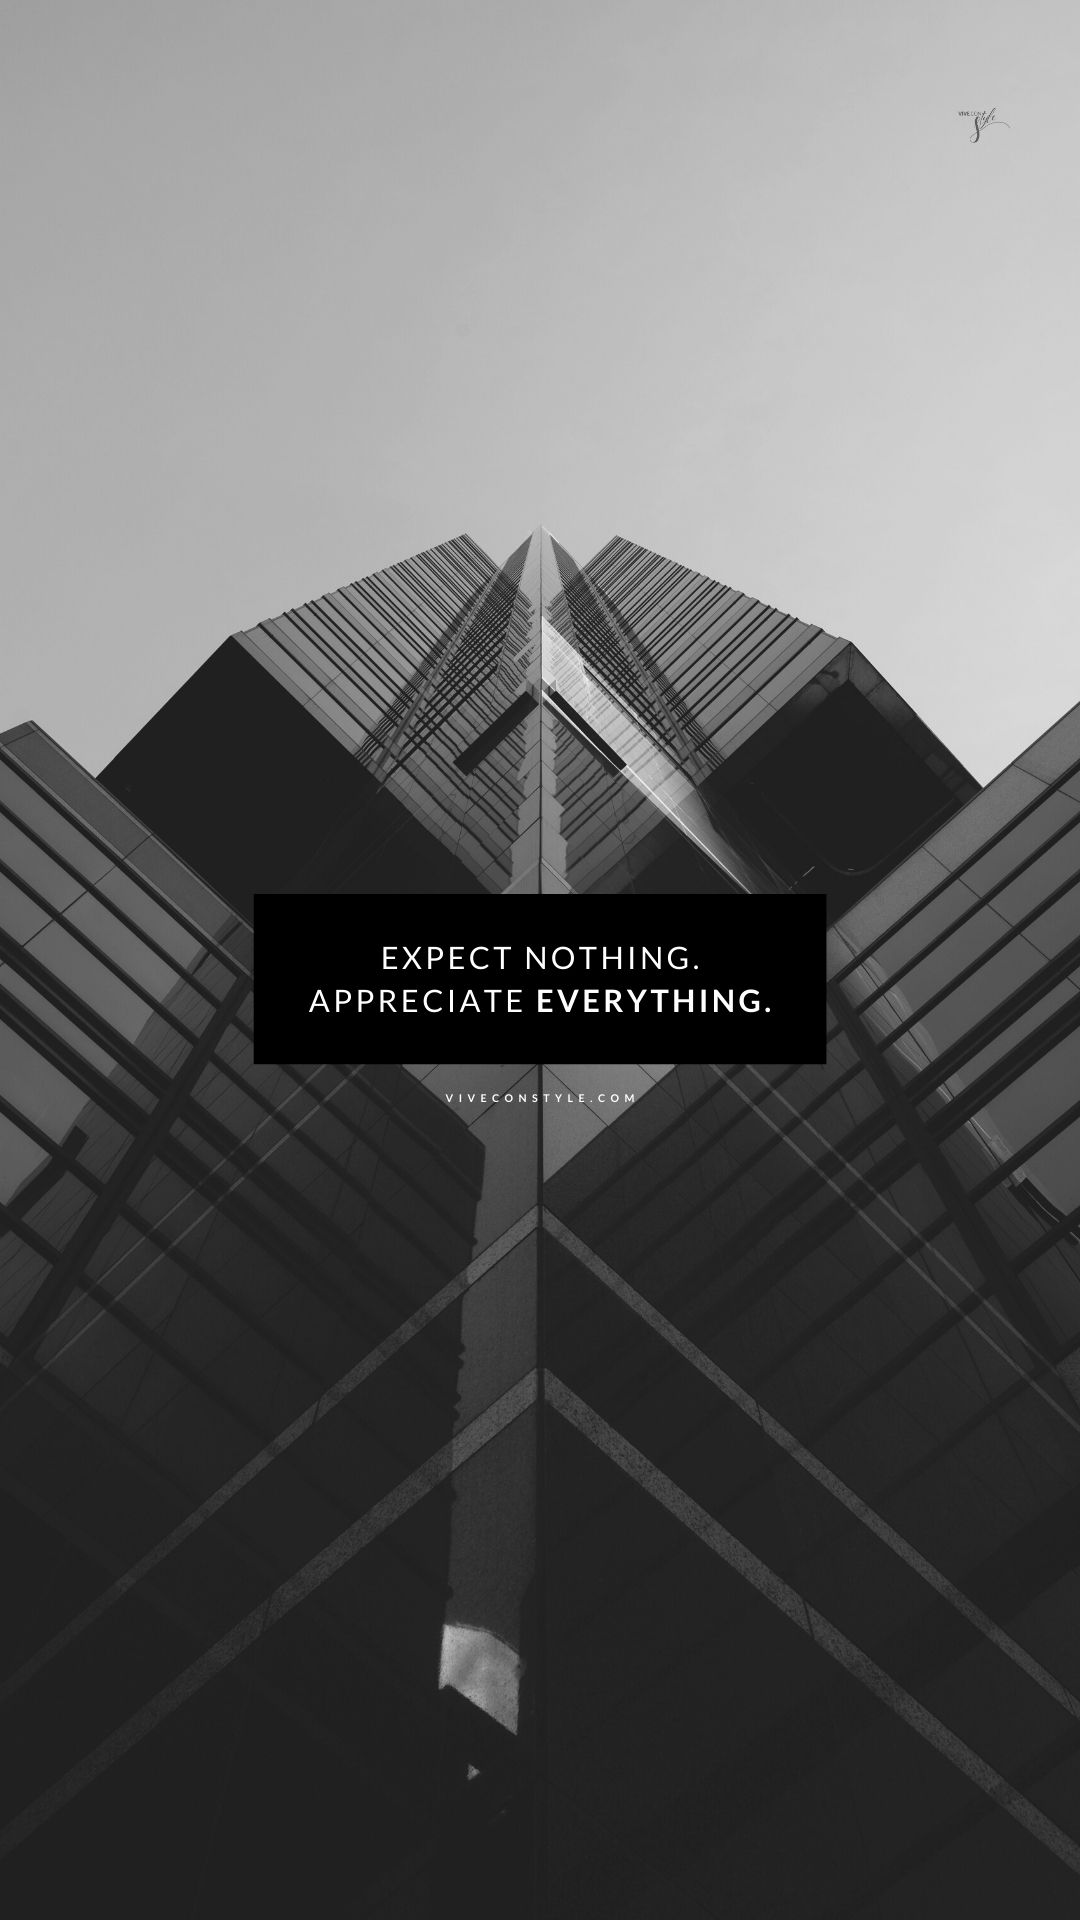 Expect nothing. Appreciate everything Free inspirational wallpaper